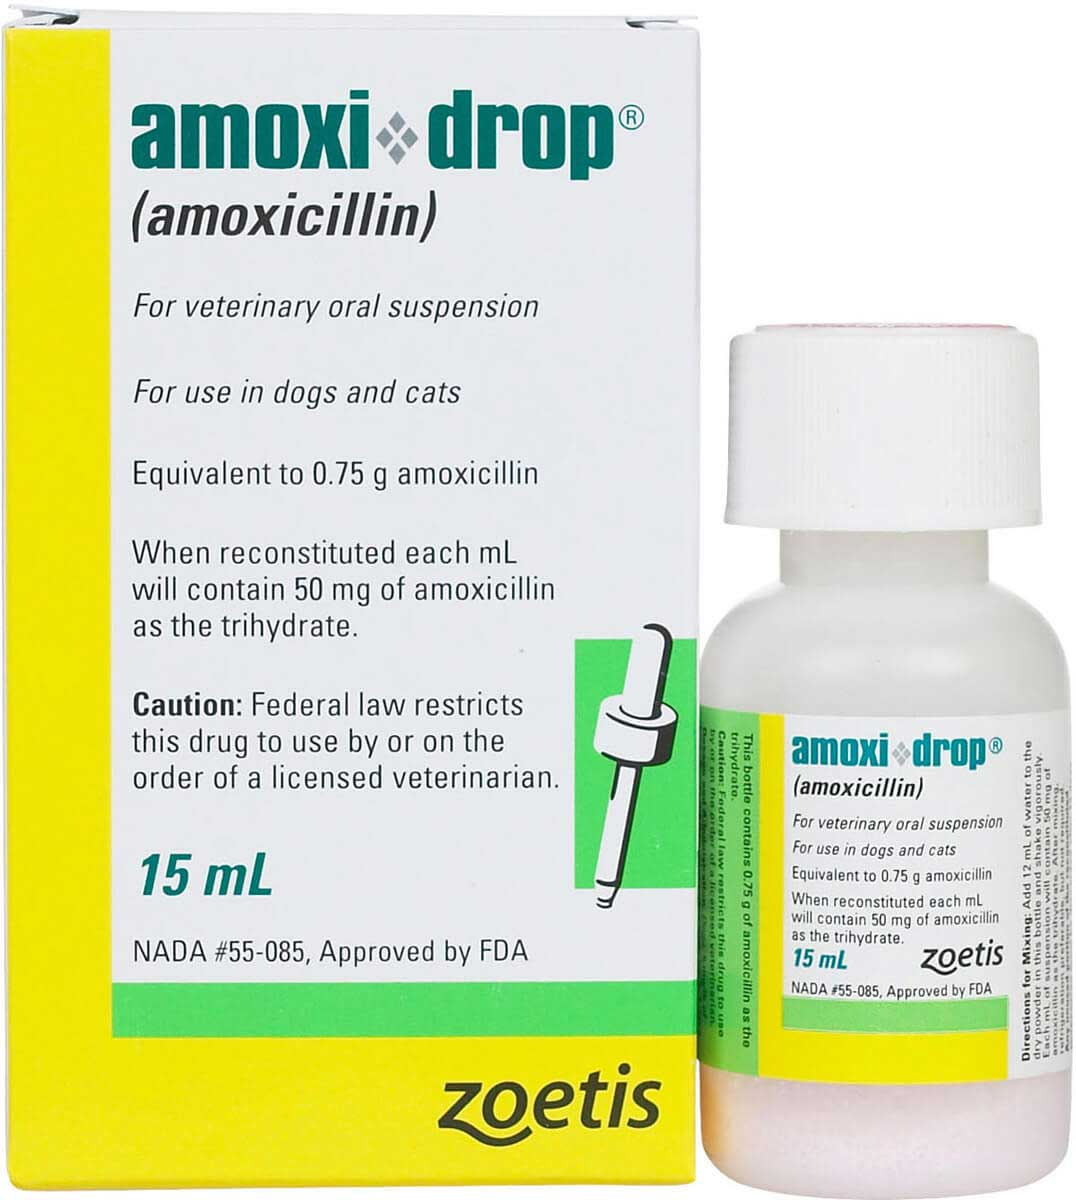 Amoxidrop For Dogs Cats Zoetis Animal Health Safearmacycat Rx